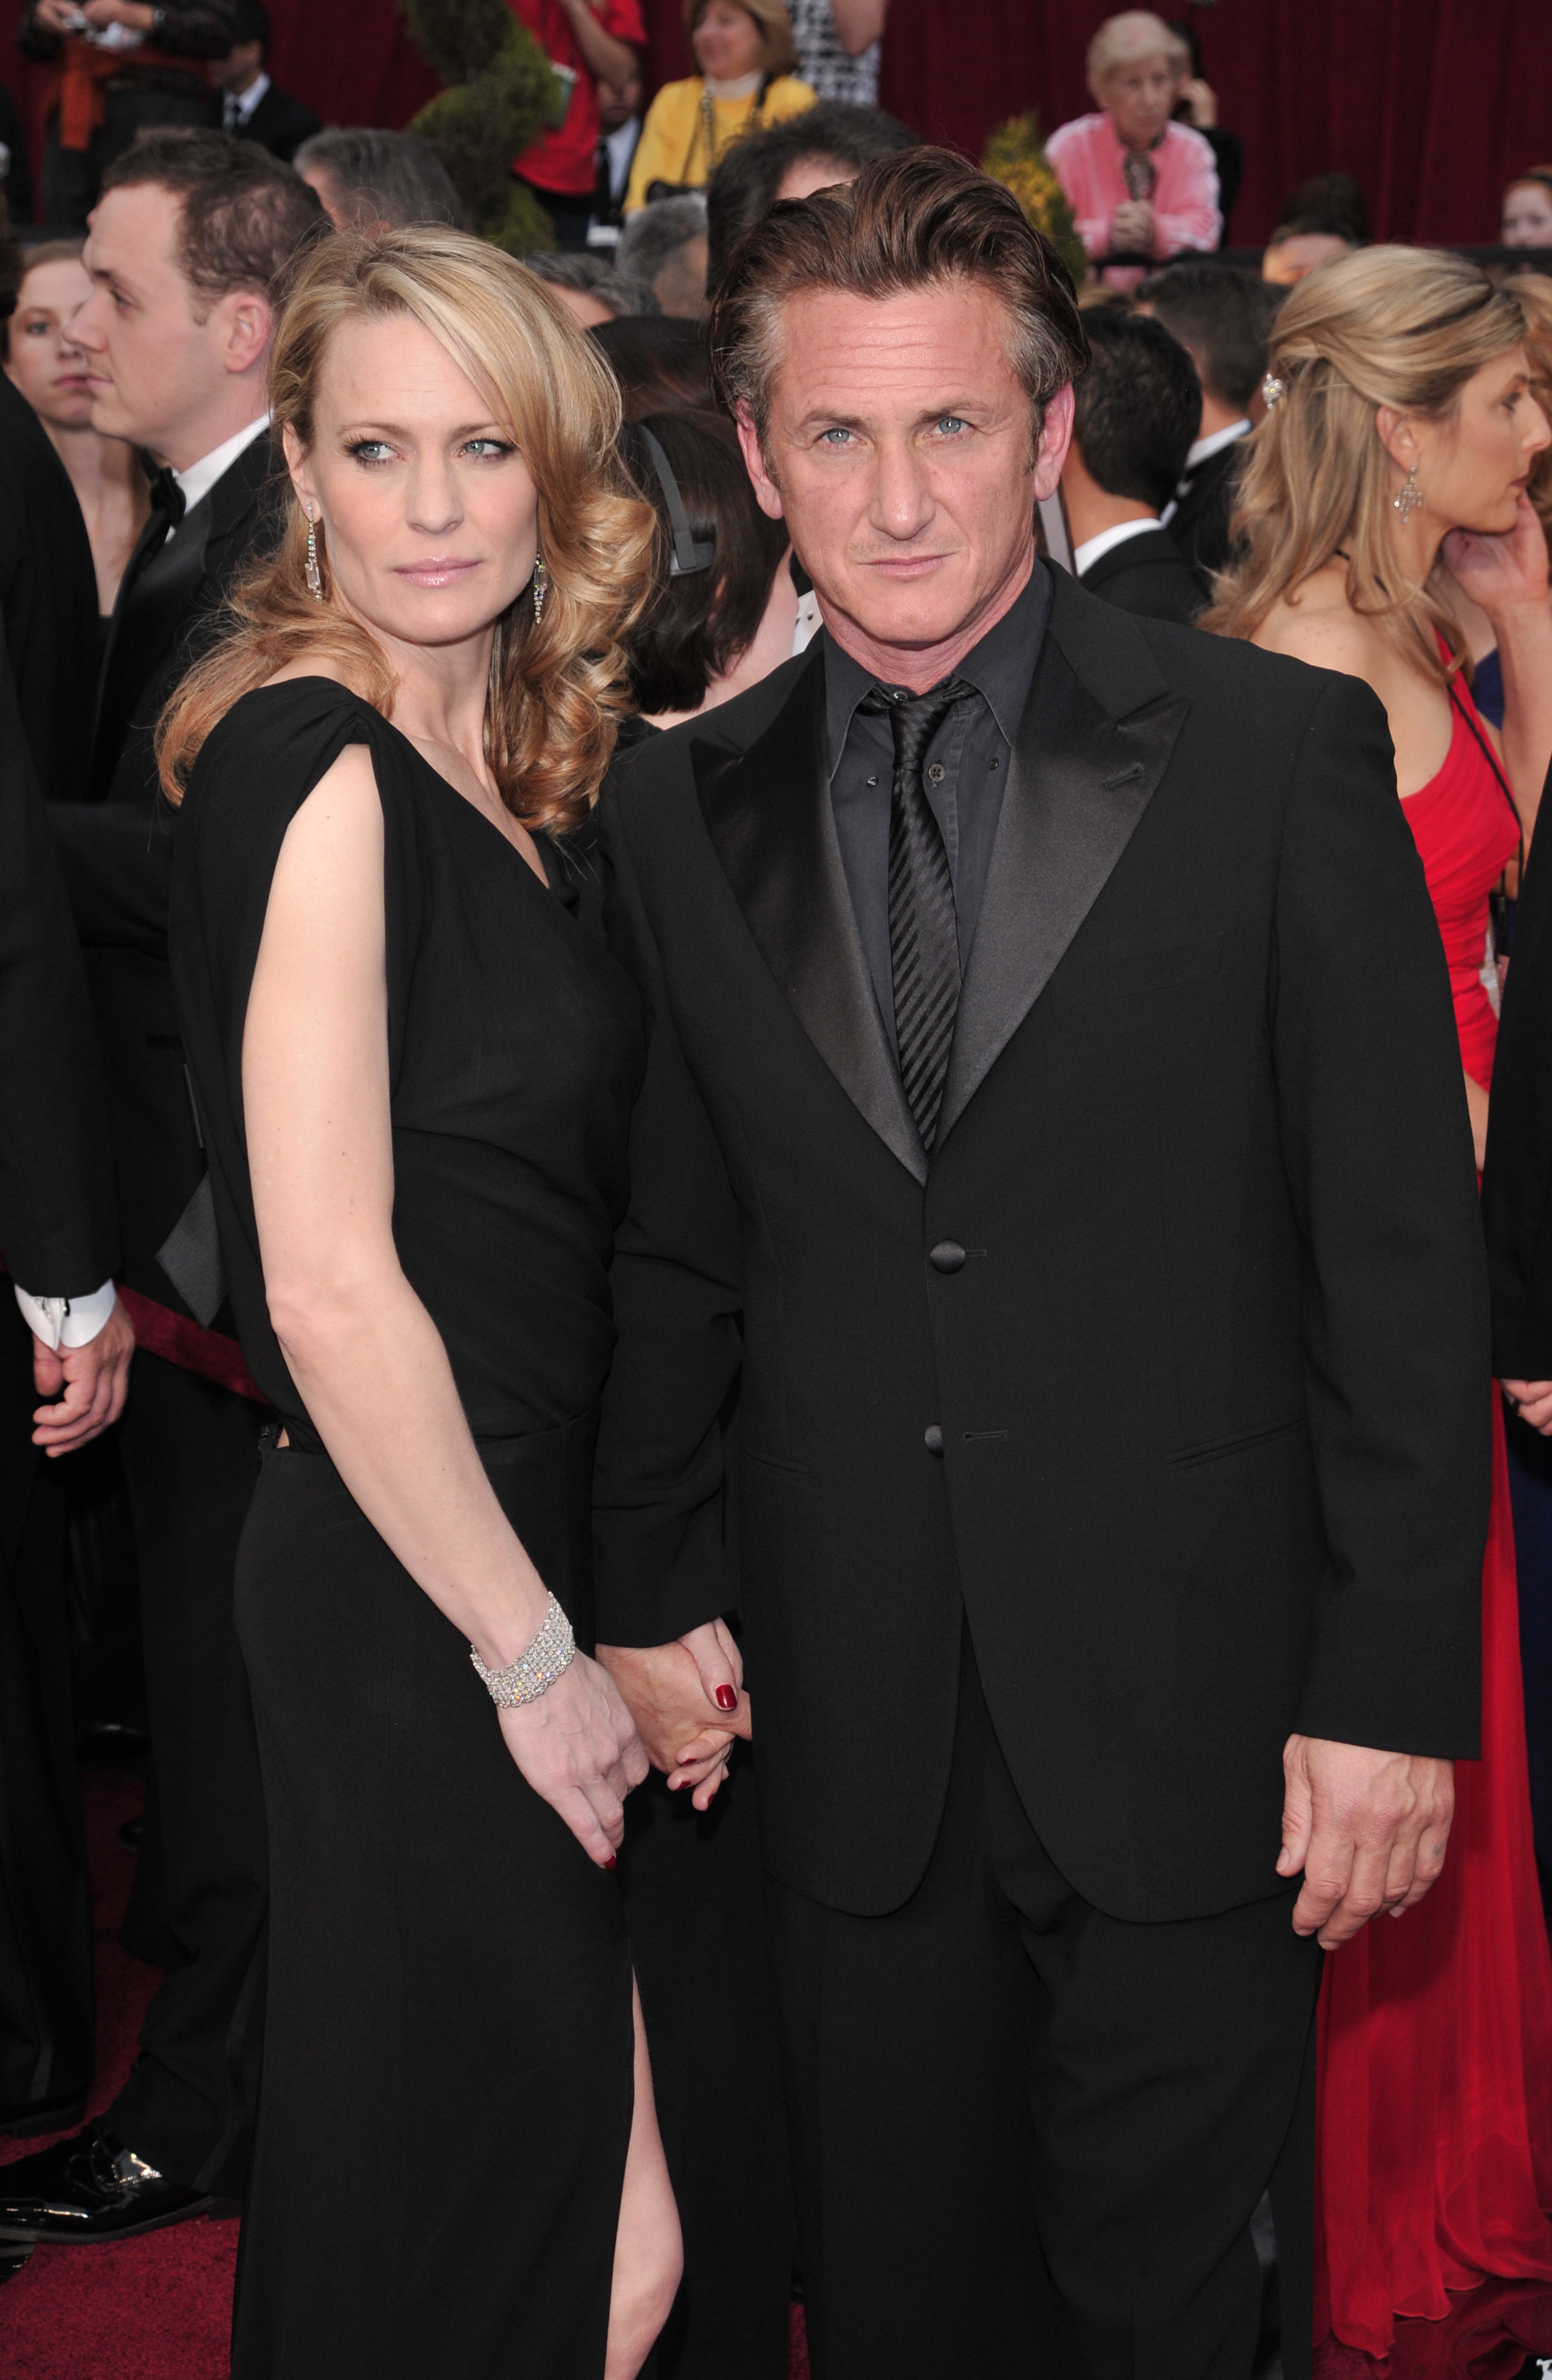 Is Rob Wright glad Sean Penn, Charlize Theron's movie tanked?